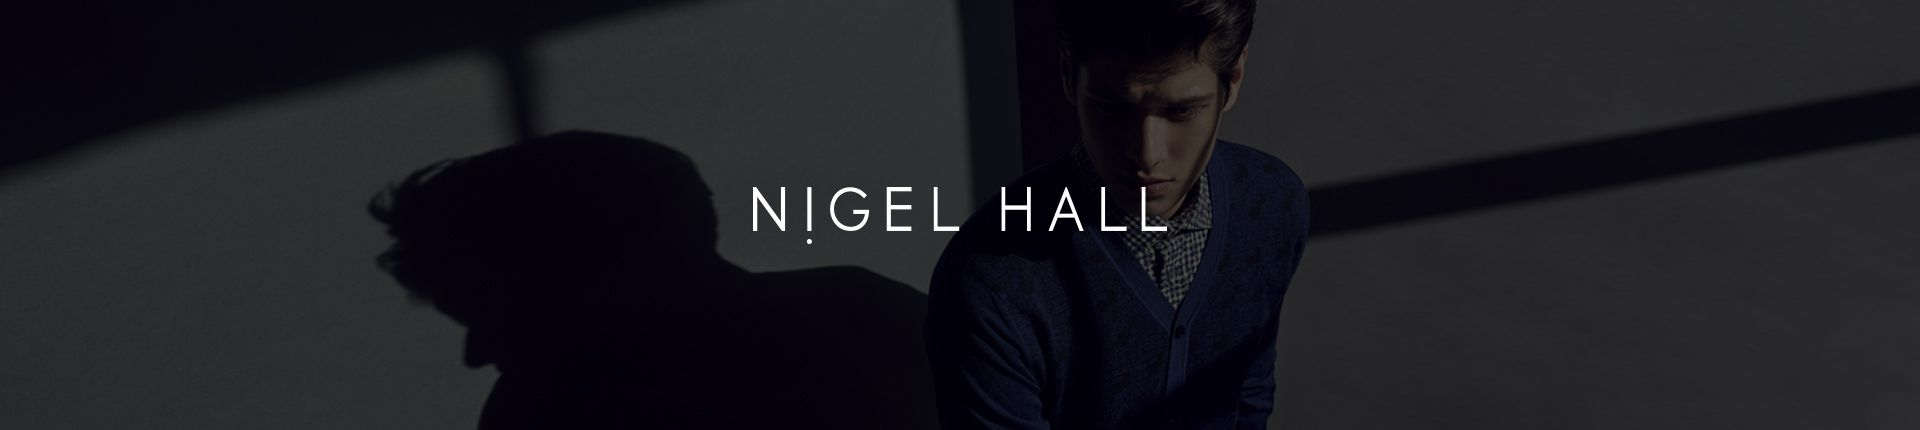 Nigel Hall Menswear